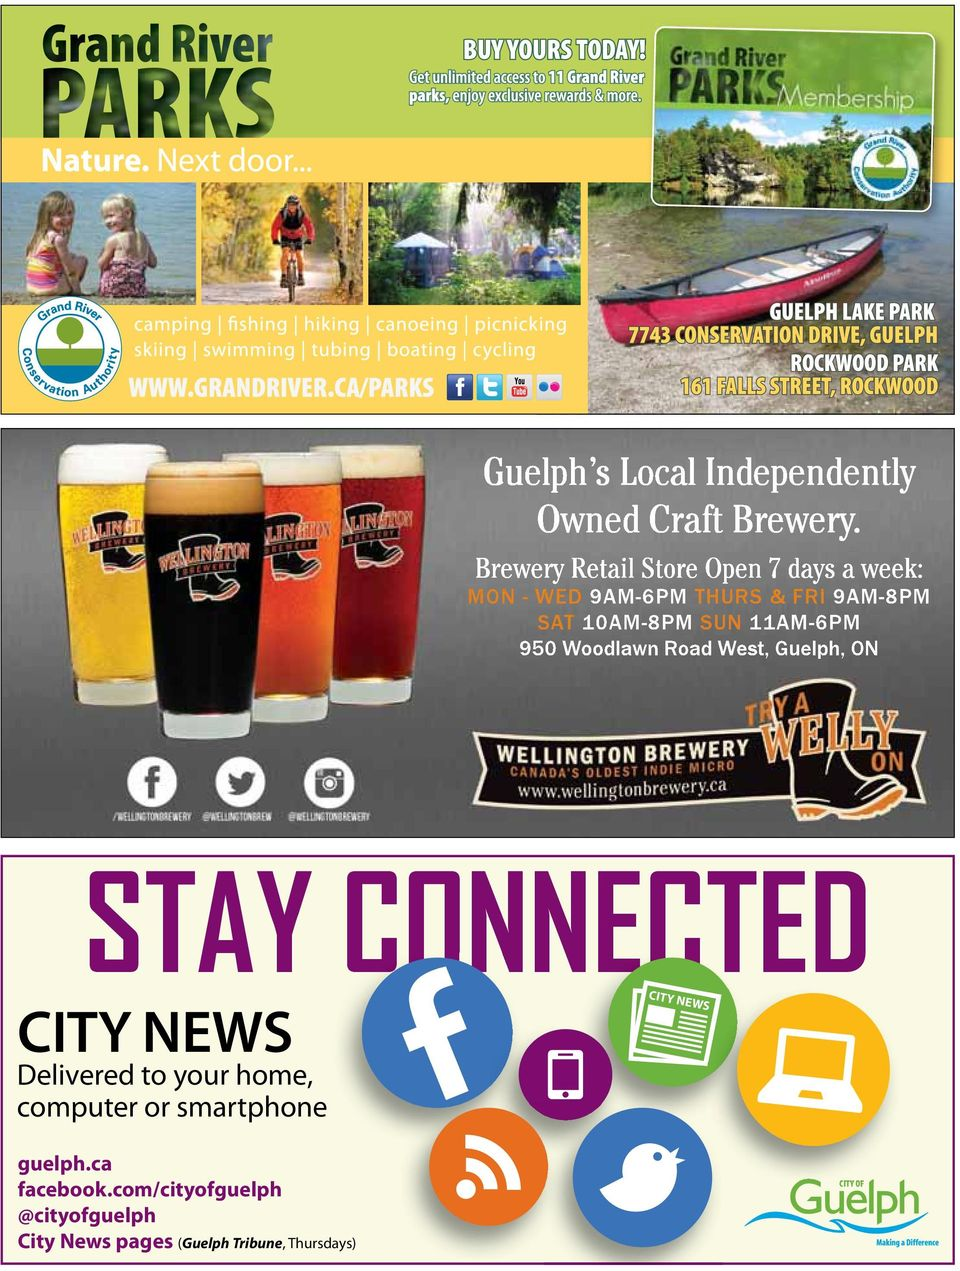 950 Woodlawn Road West, Guelph, ON STAY CONNECTED CITY NEWS Delivered to your home, computer or